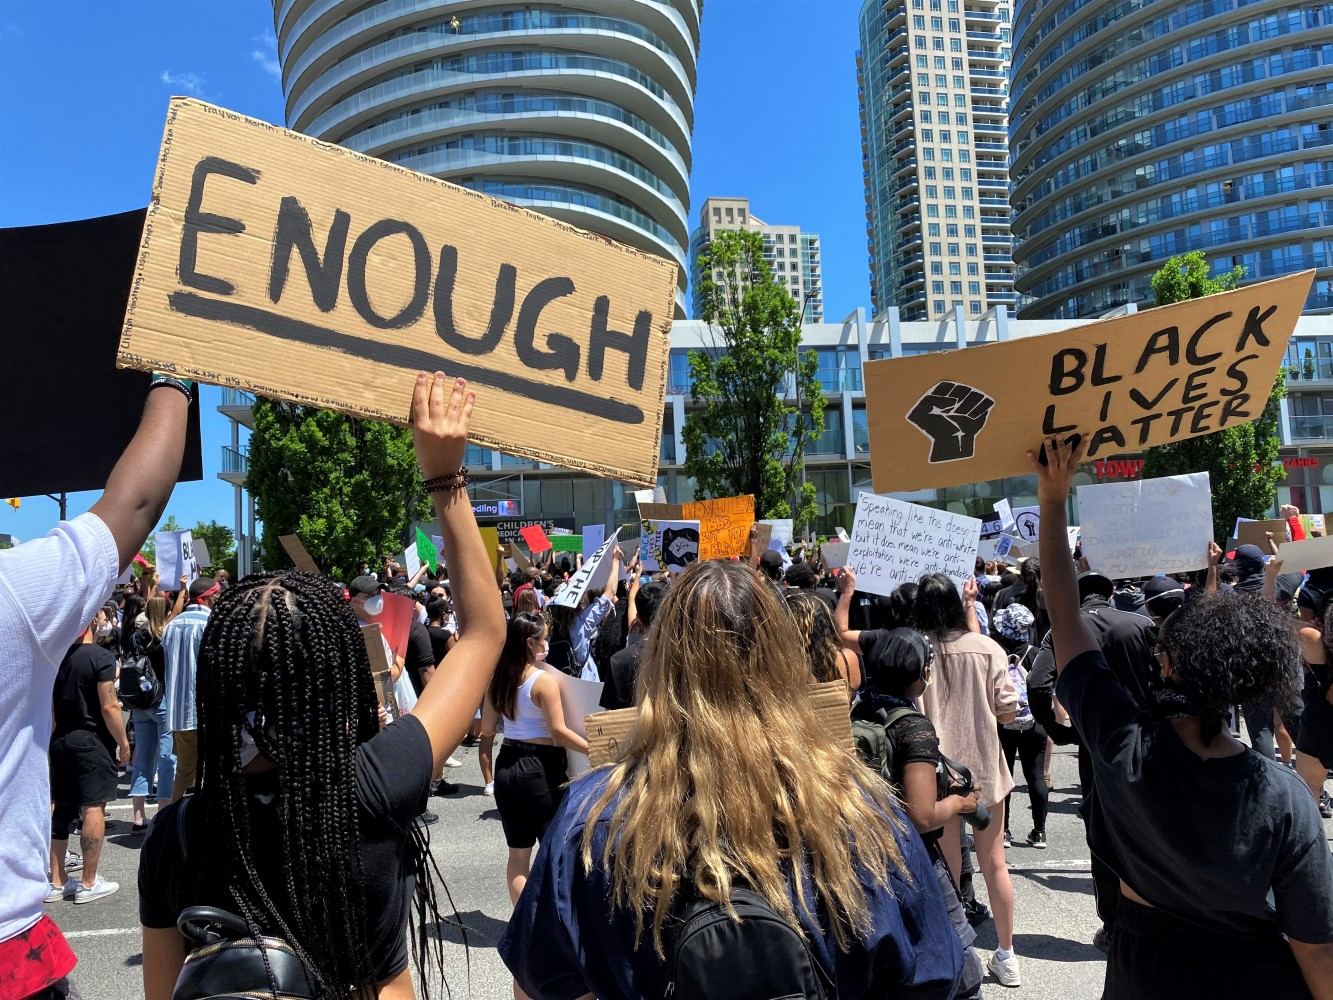 In a city with its own legacy of racism, Mississauga's Black Lives Matter demonstration offered a dose of reality and hope